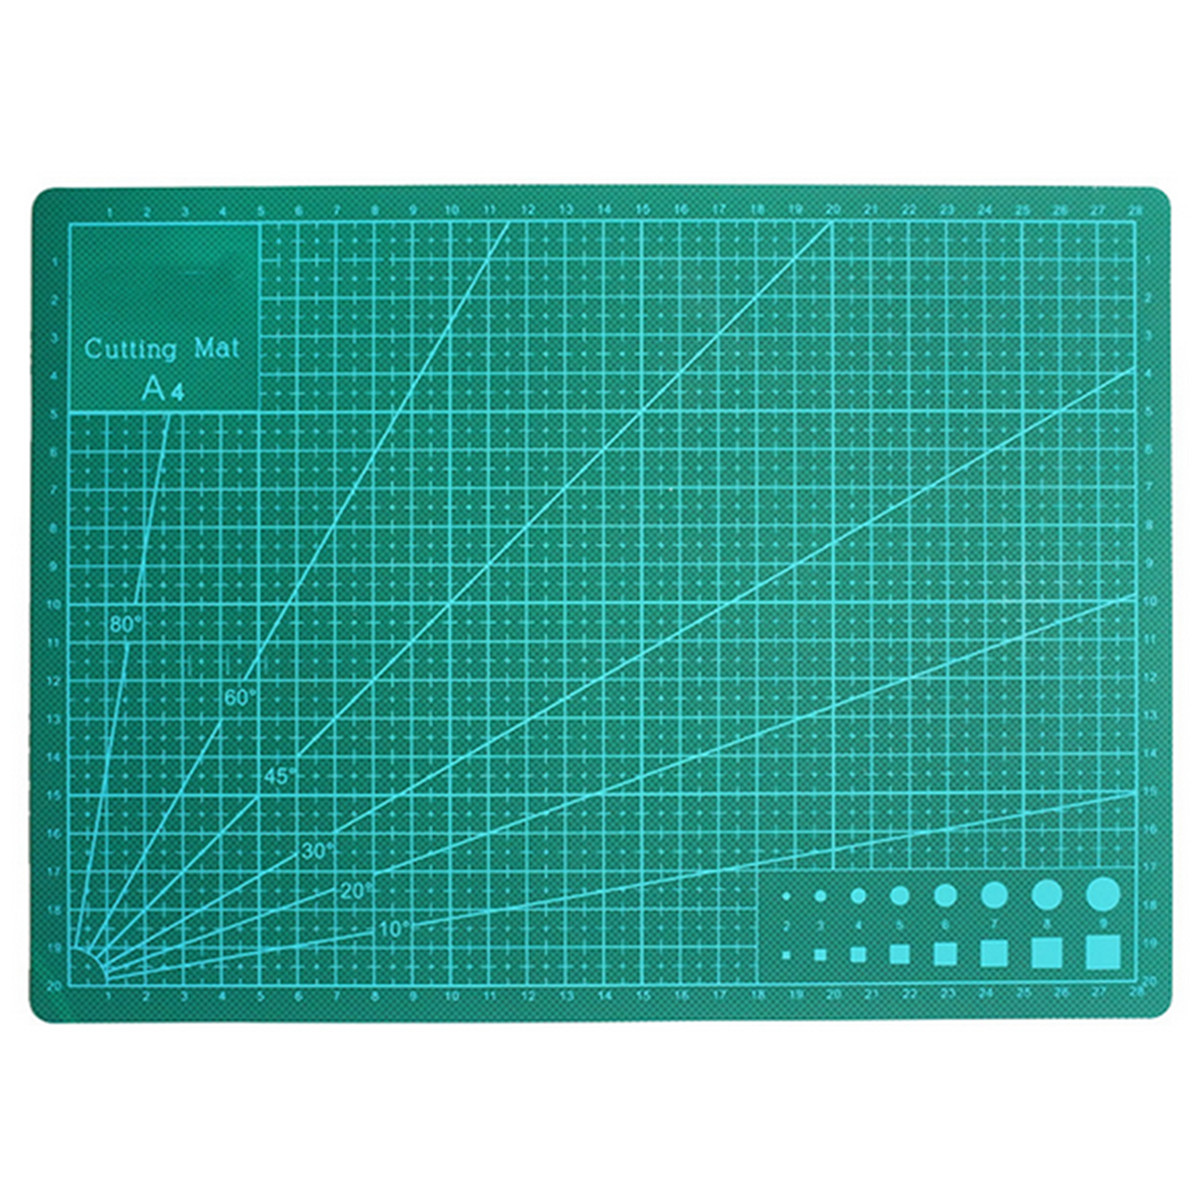 Double Sided Green Cutting Mat Board A4 Size Pad Model Healing Design Craft Tool